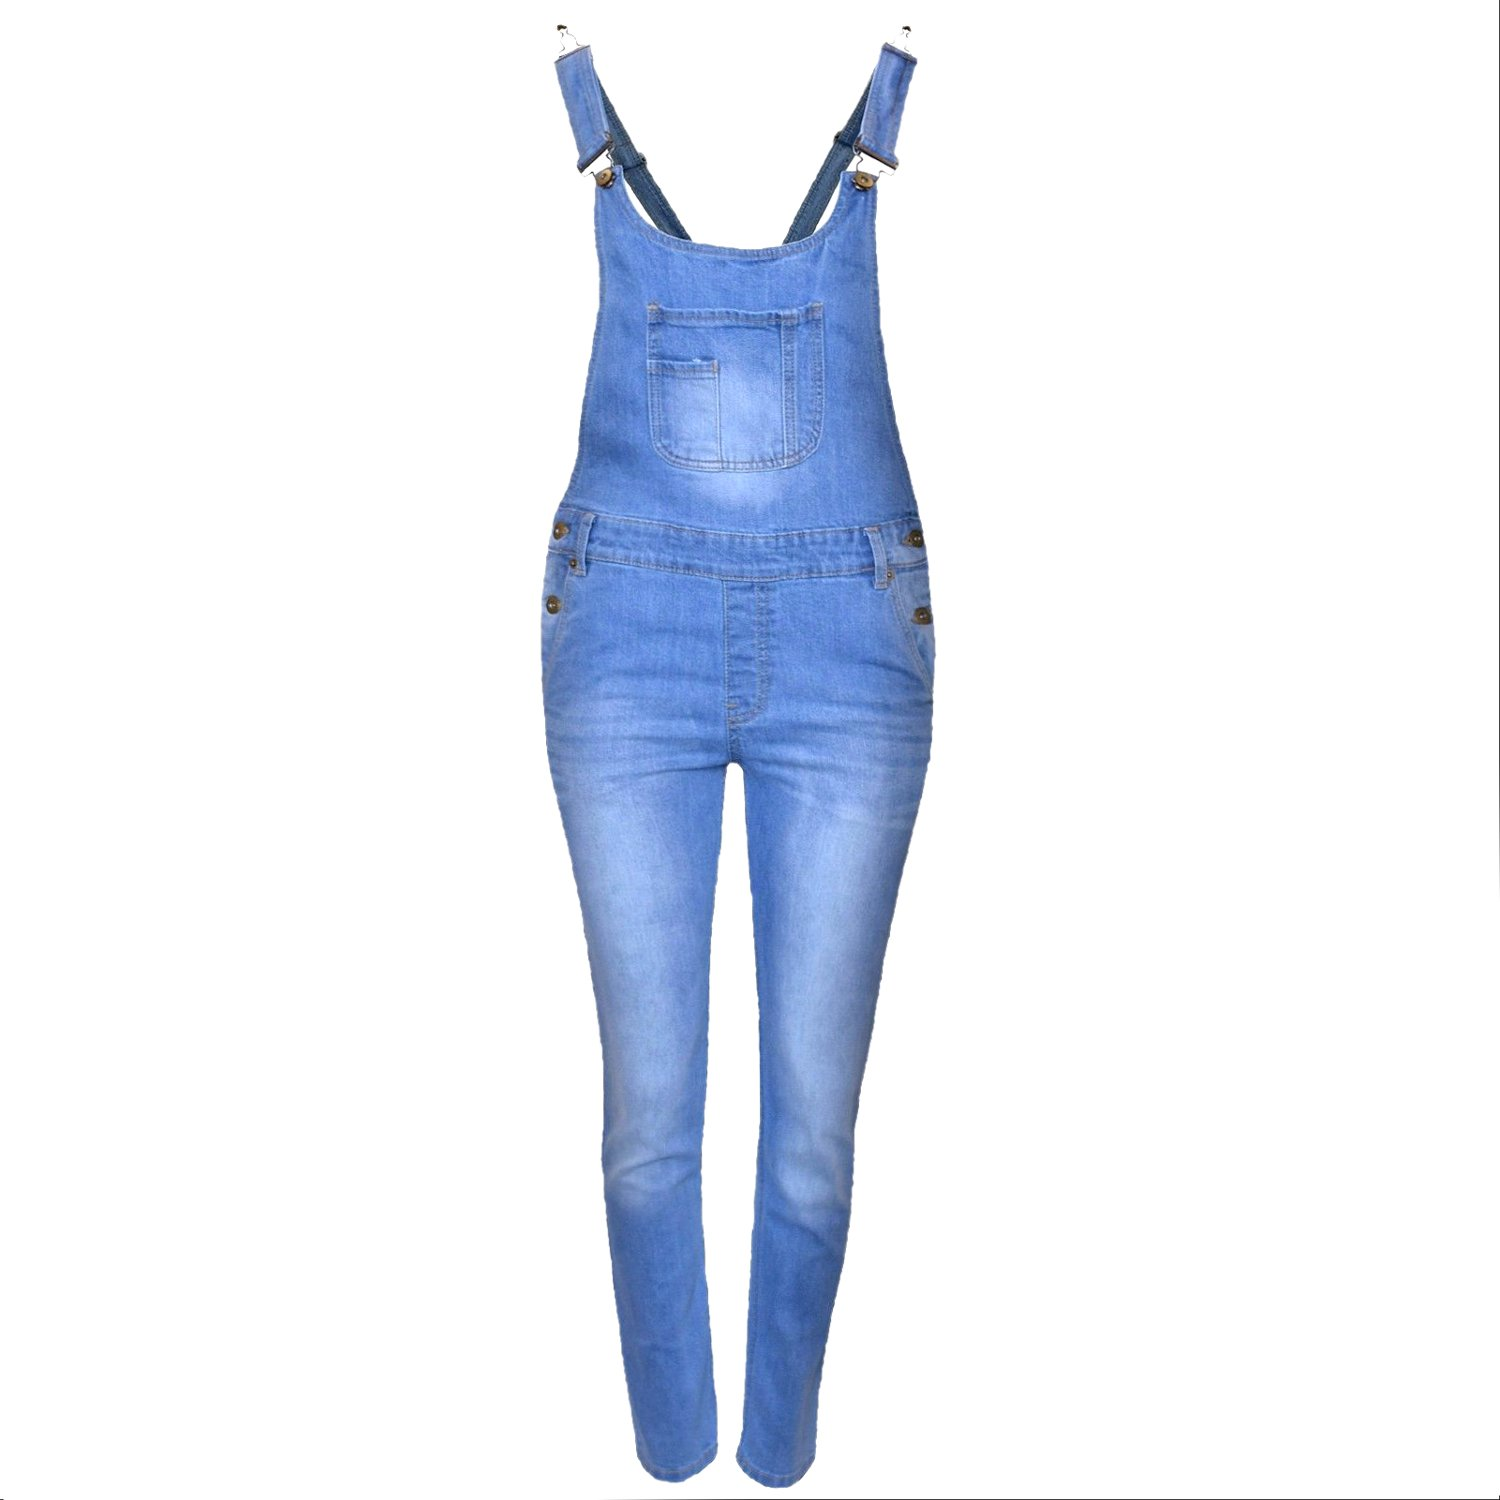 Kids Girls Denim Jeans Dungaree Full Length Celeb Pinafore Overall Jumpsuit 7-14